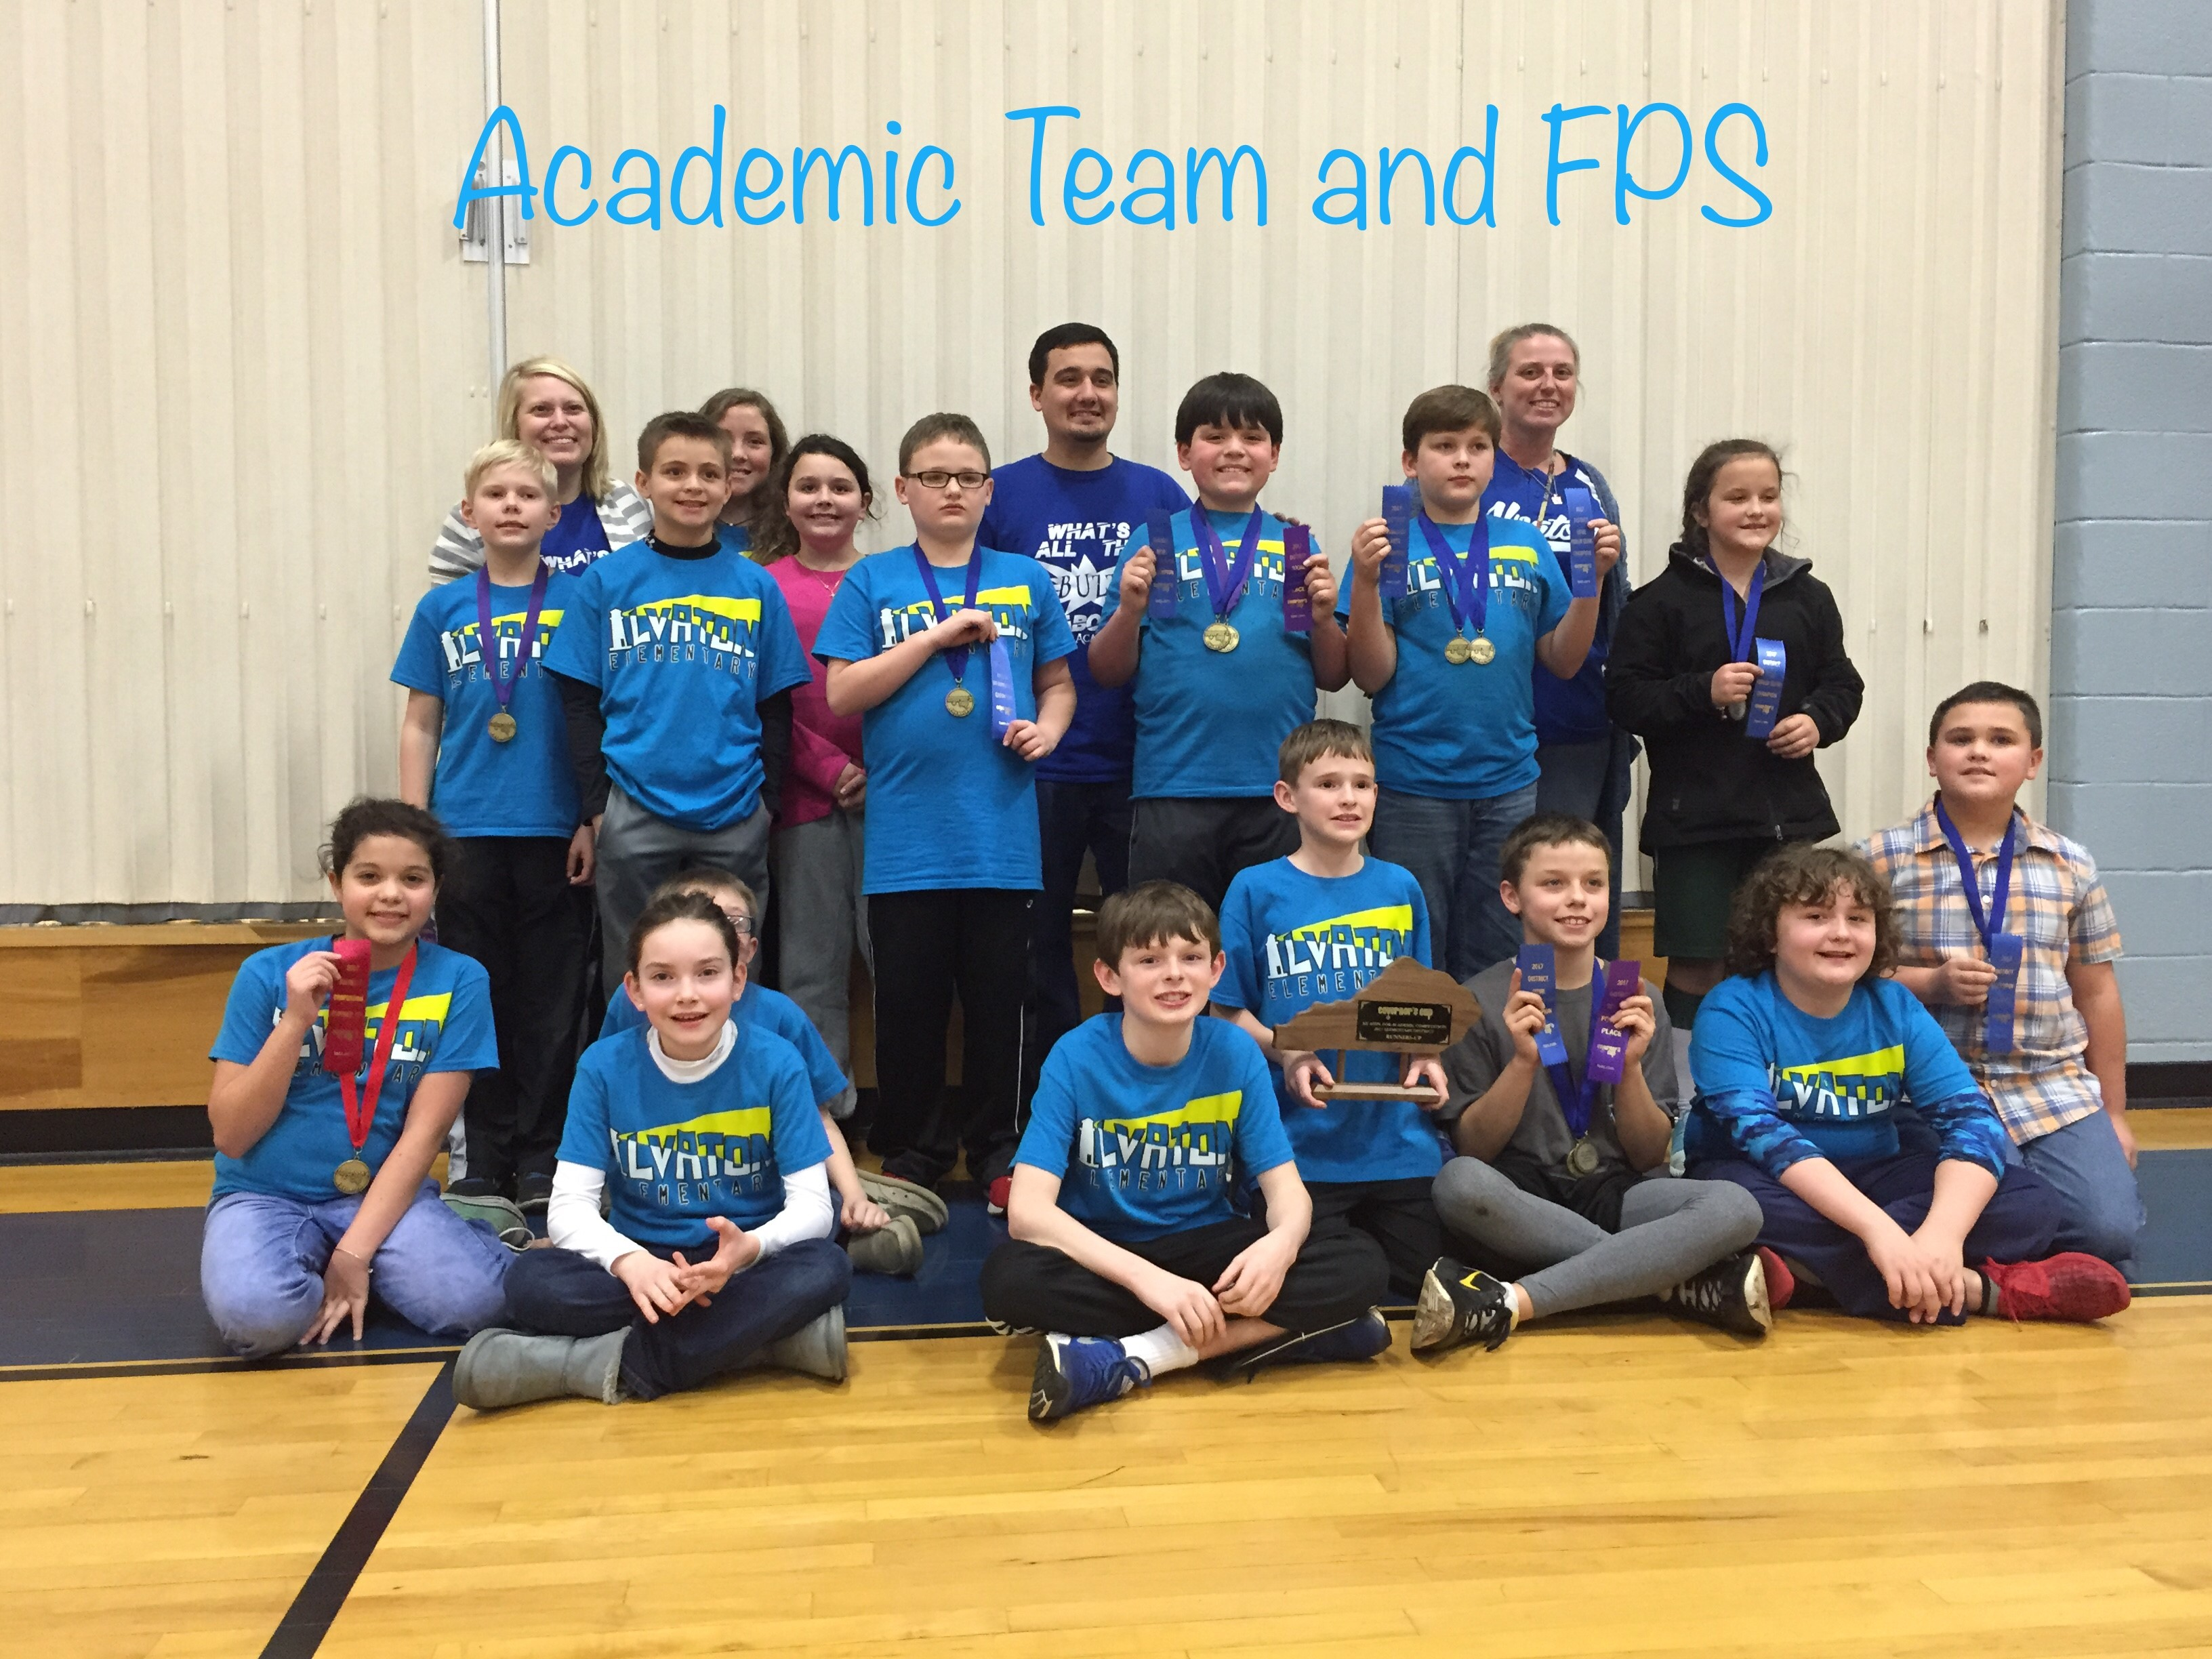 Academic Team and FPS